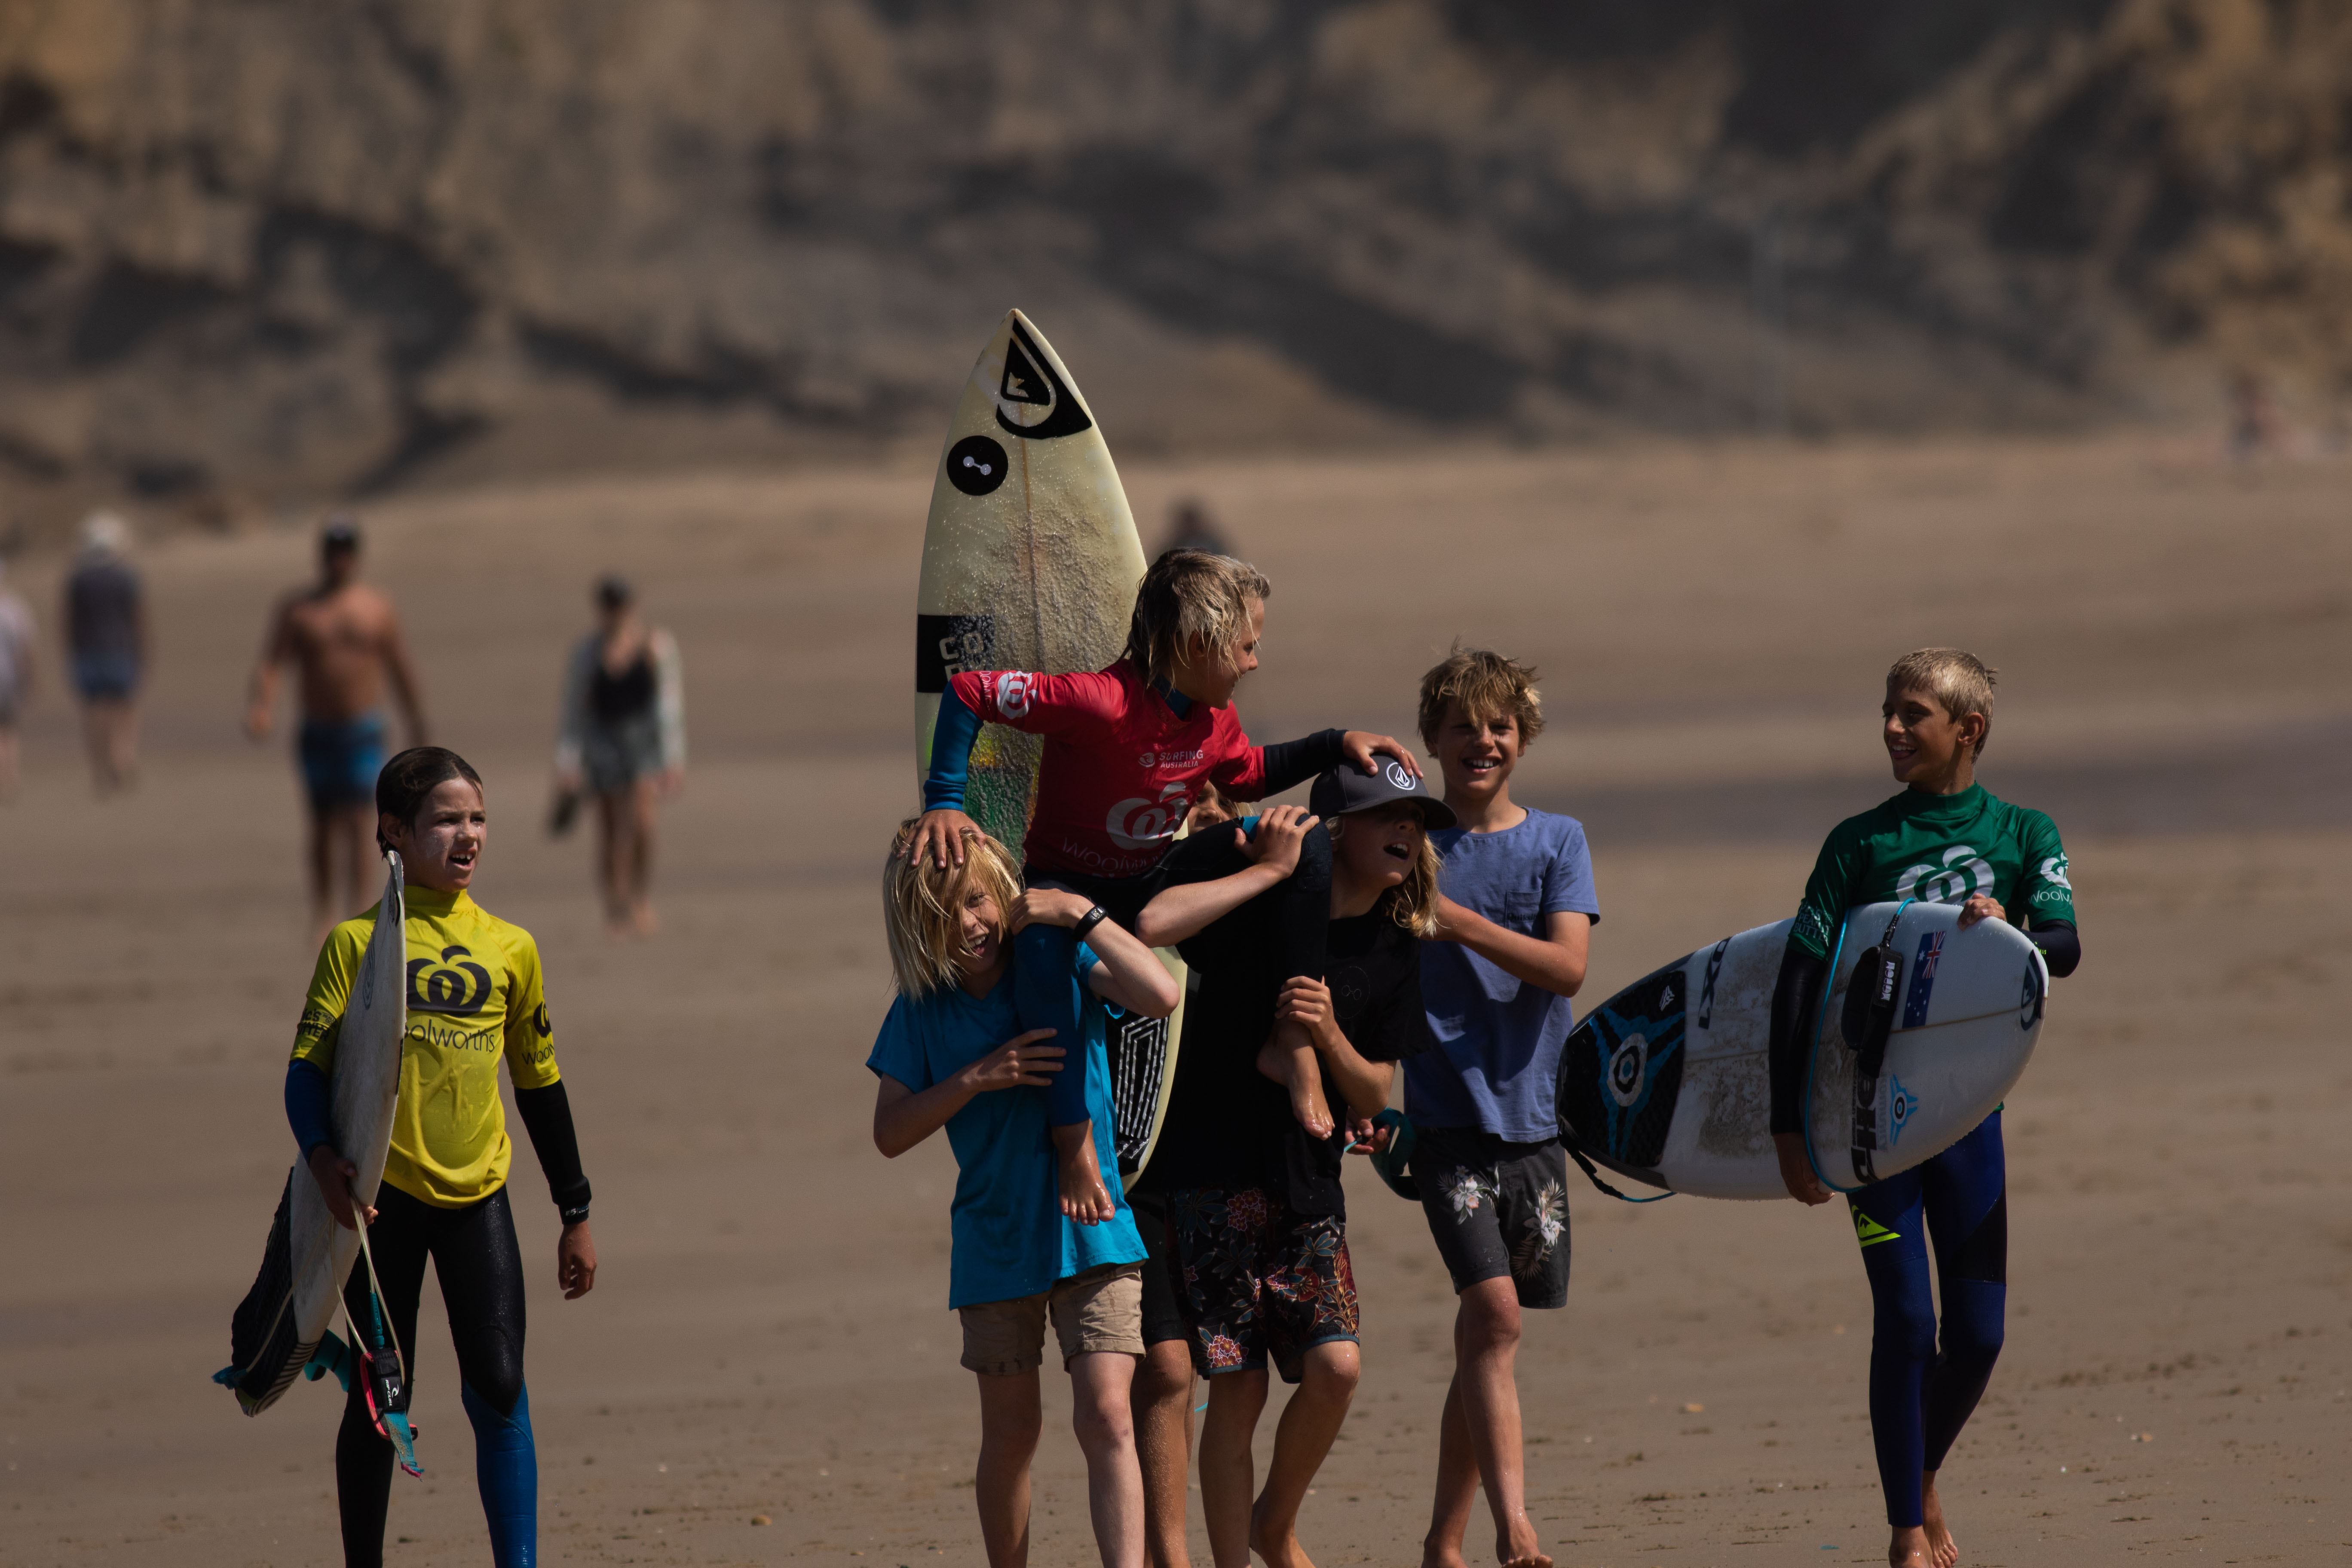 Champion Crowned Woolworths Surfer Grom Comp Zl 015